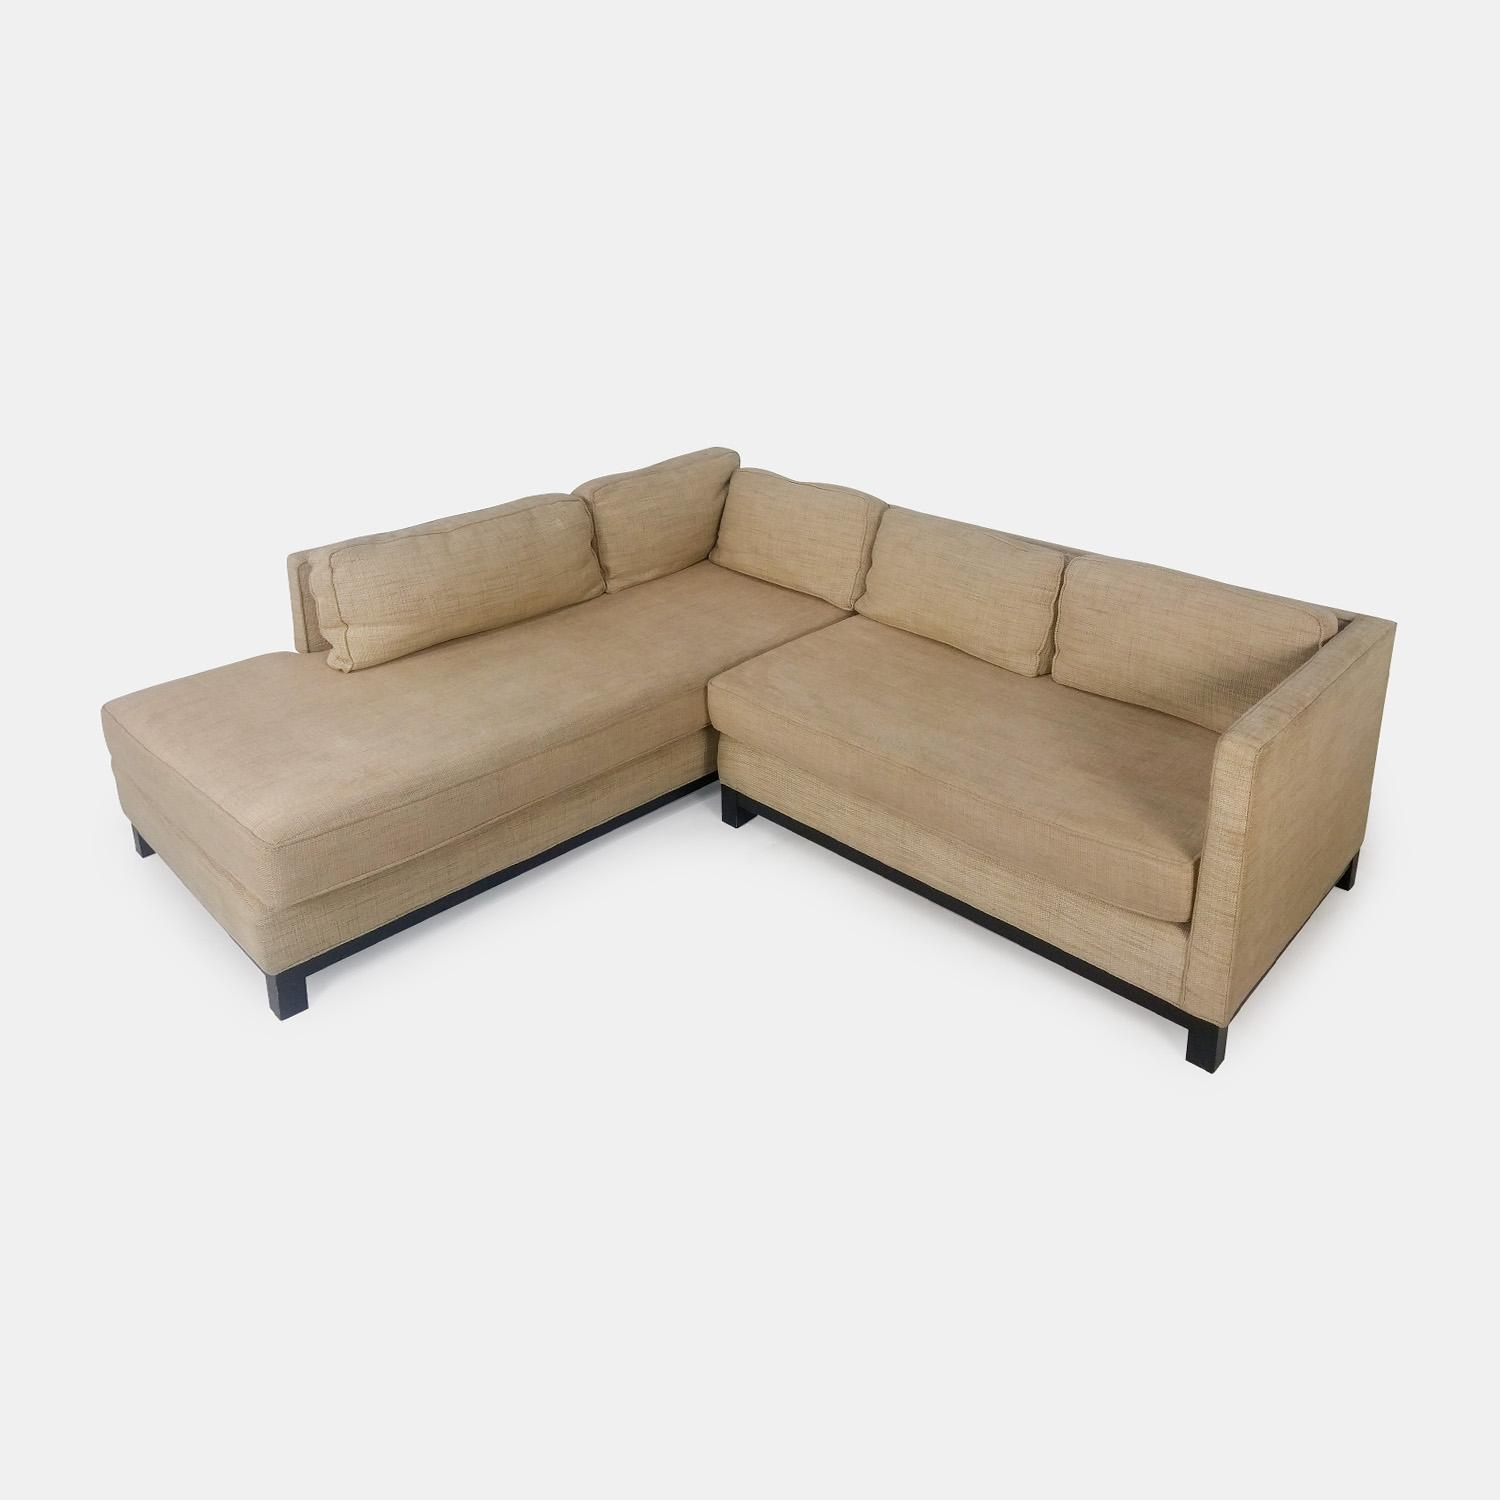 62% Off - Mitchell Gold And Bob Williams Mitchell Gold & Bob throughout Gold Sectional Sofa